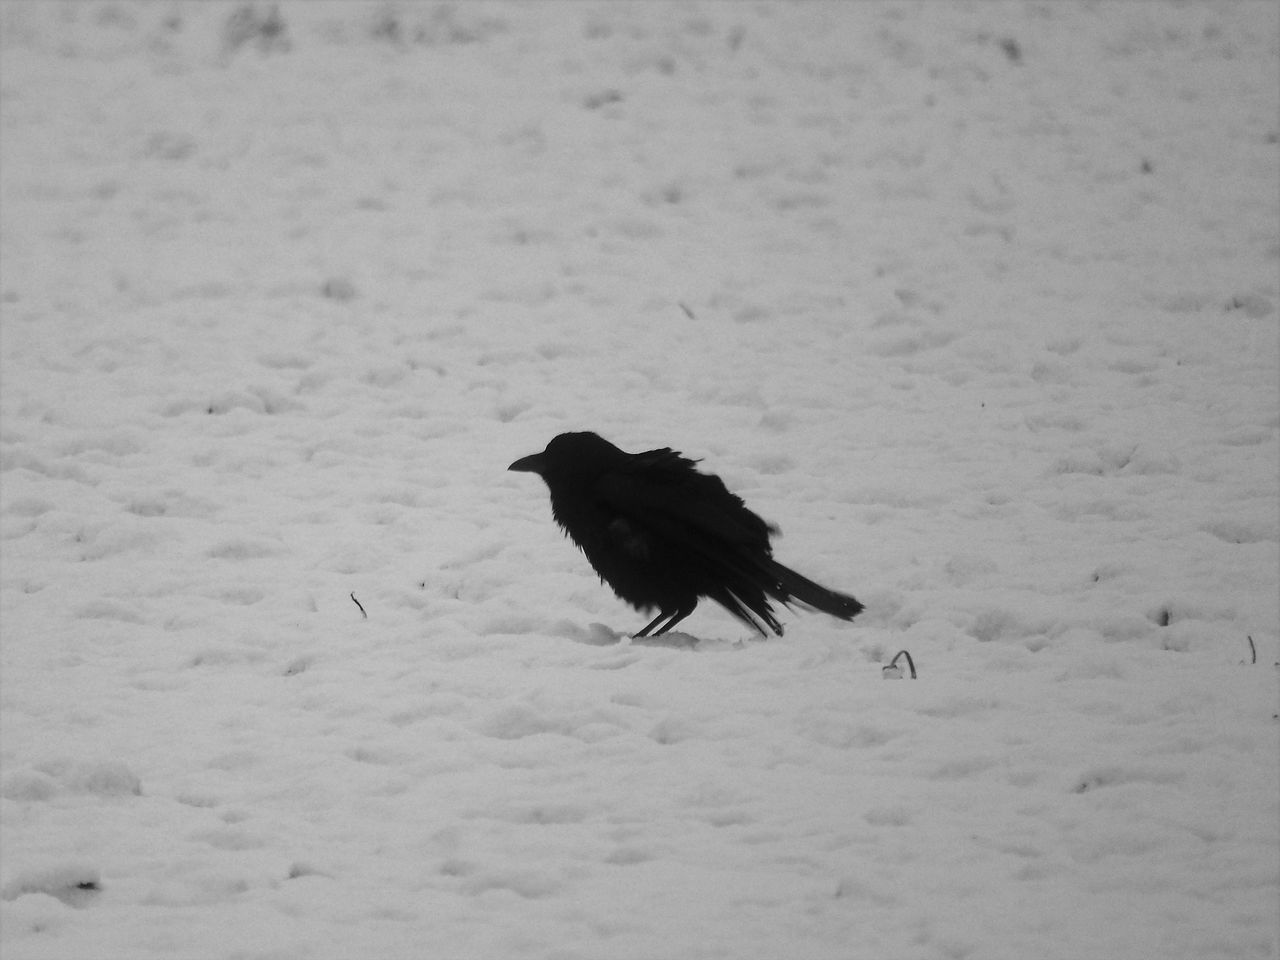 animal themes, animal, bird, snow, winter, one animal, vertebrate, animals in the wild, animal wildlife, cold temperature, no people, day, nature, field, white color, land, beauty in nature, black color, outdoors